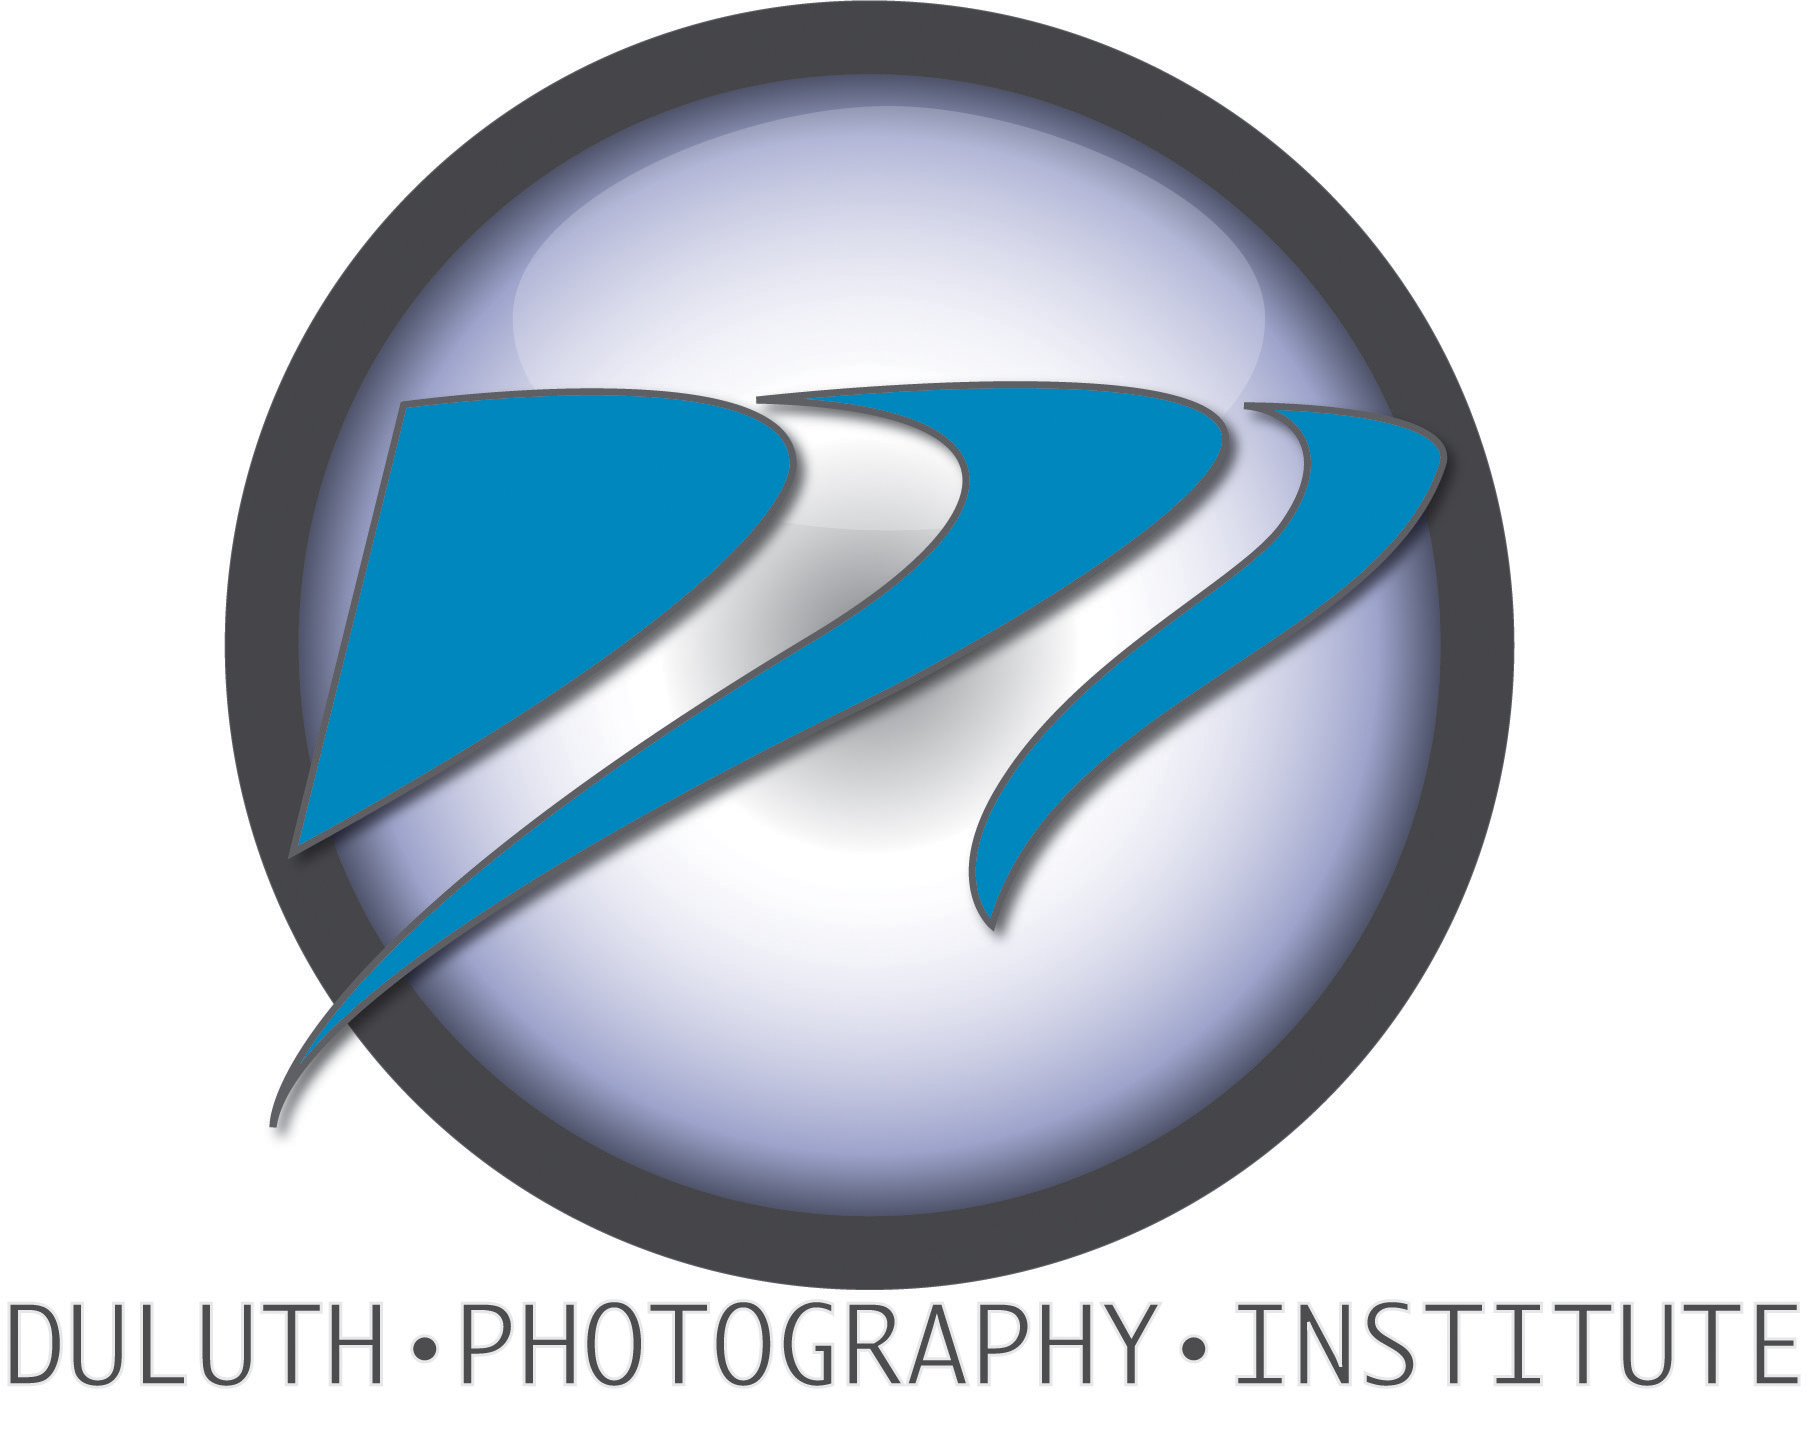 The Duluth Photography Institute